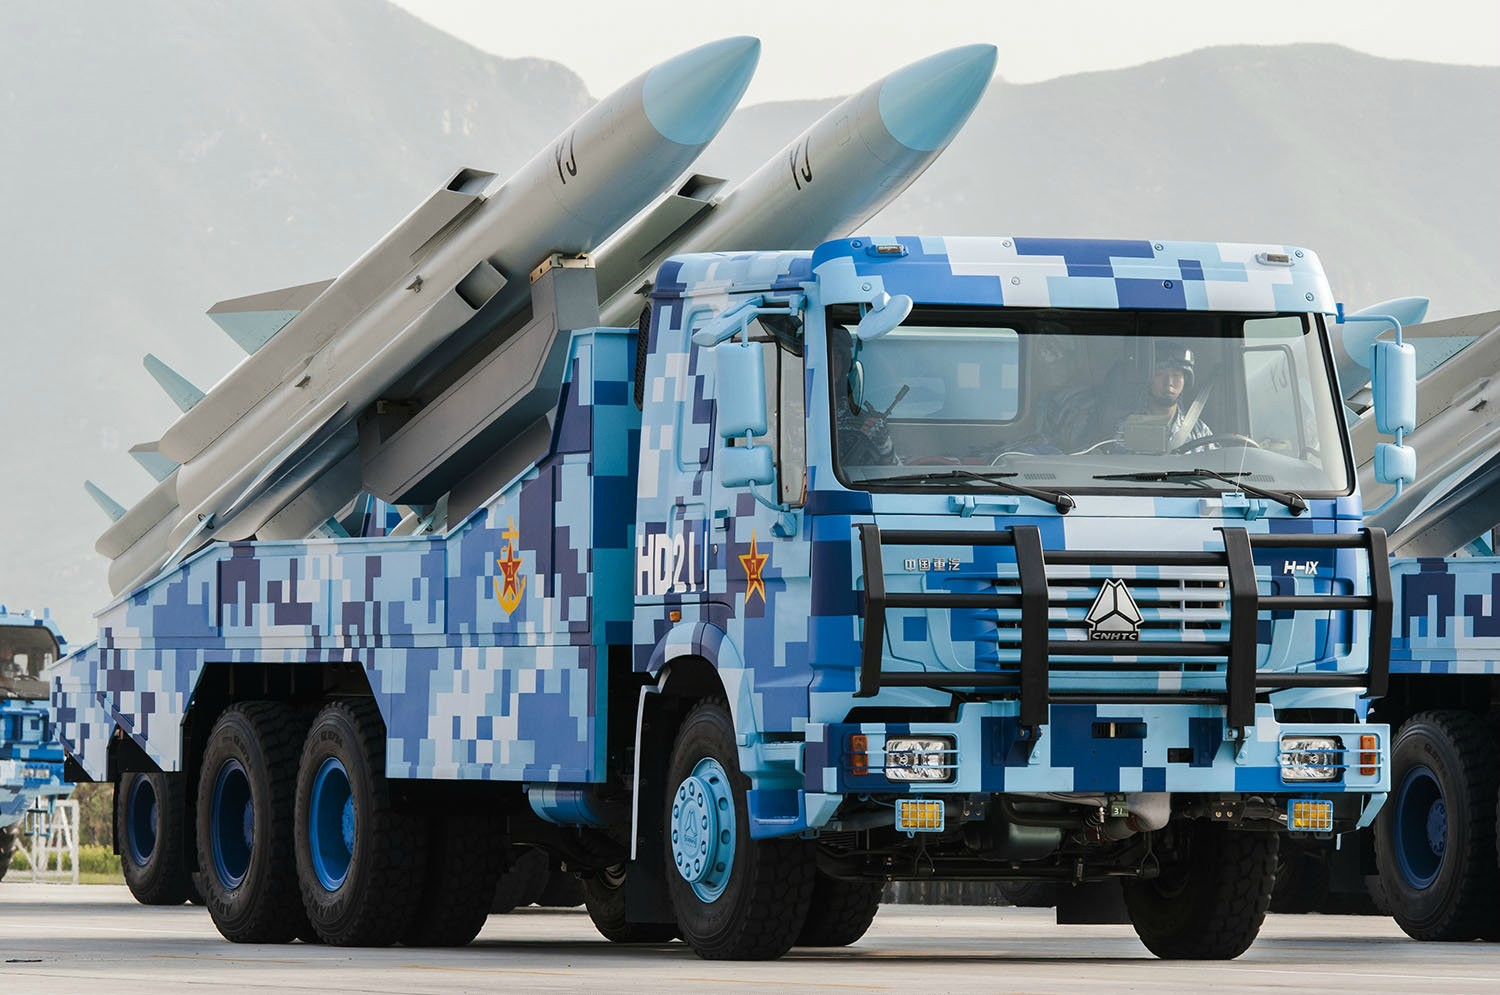 Analysis of Anti ship missiles and Ship borne air defense system unveiled at Chinese military parade 925 001